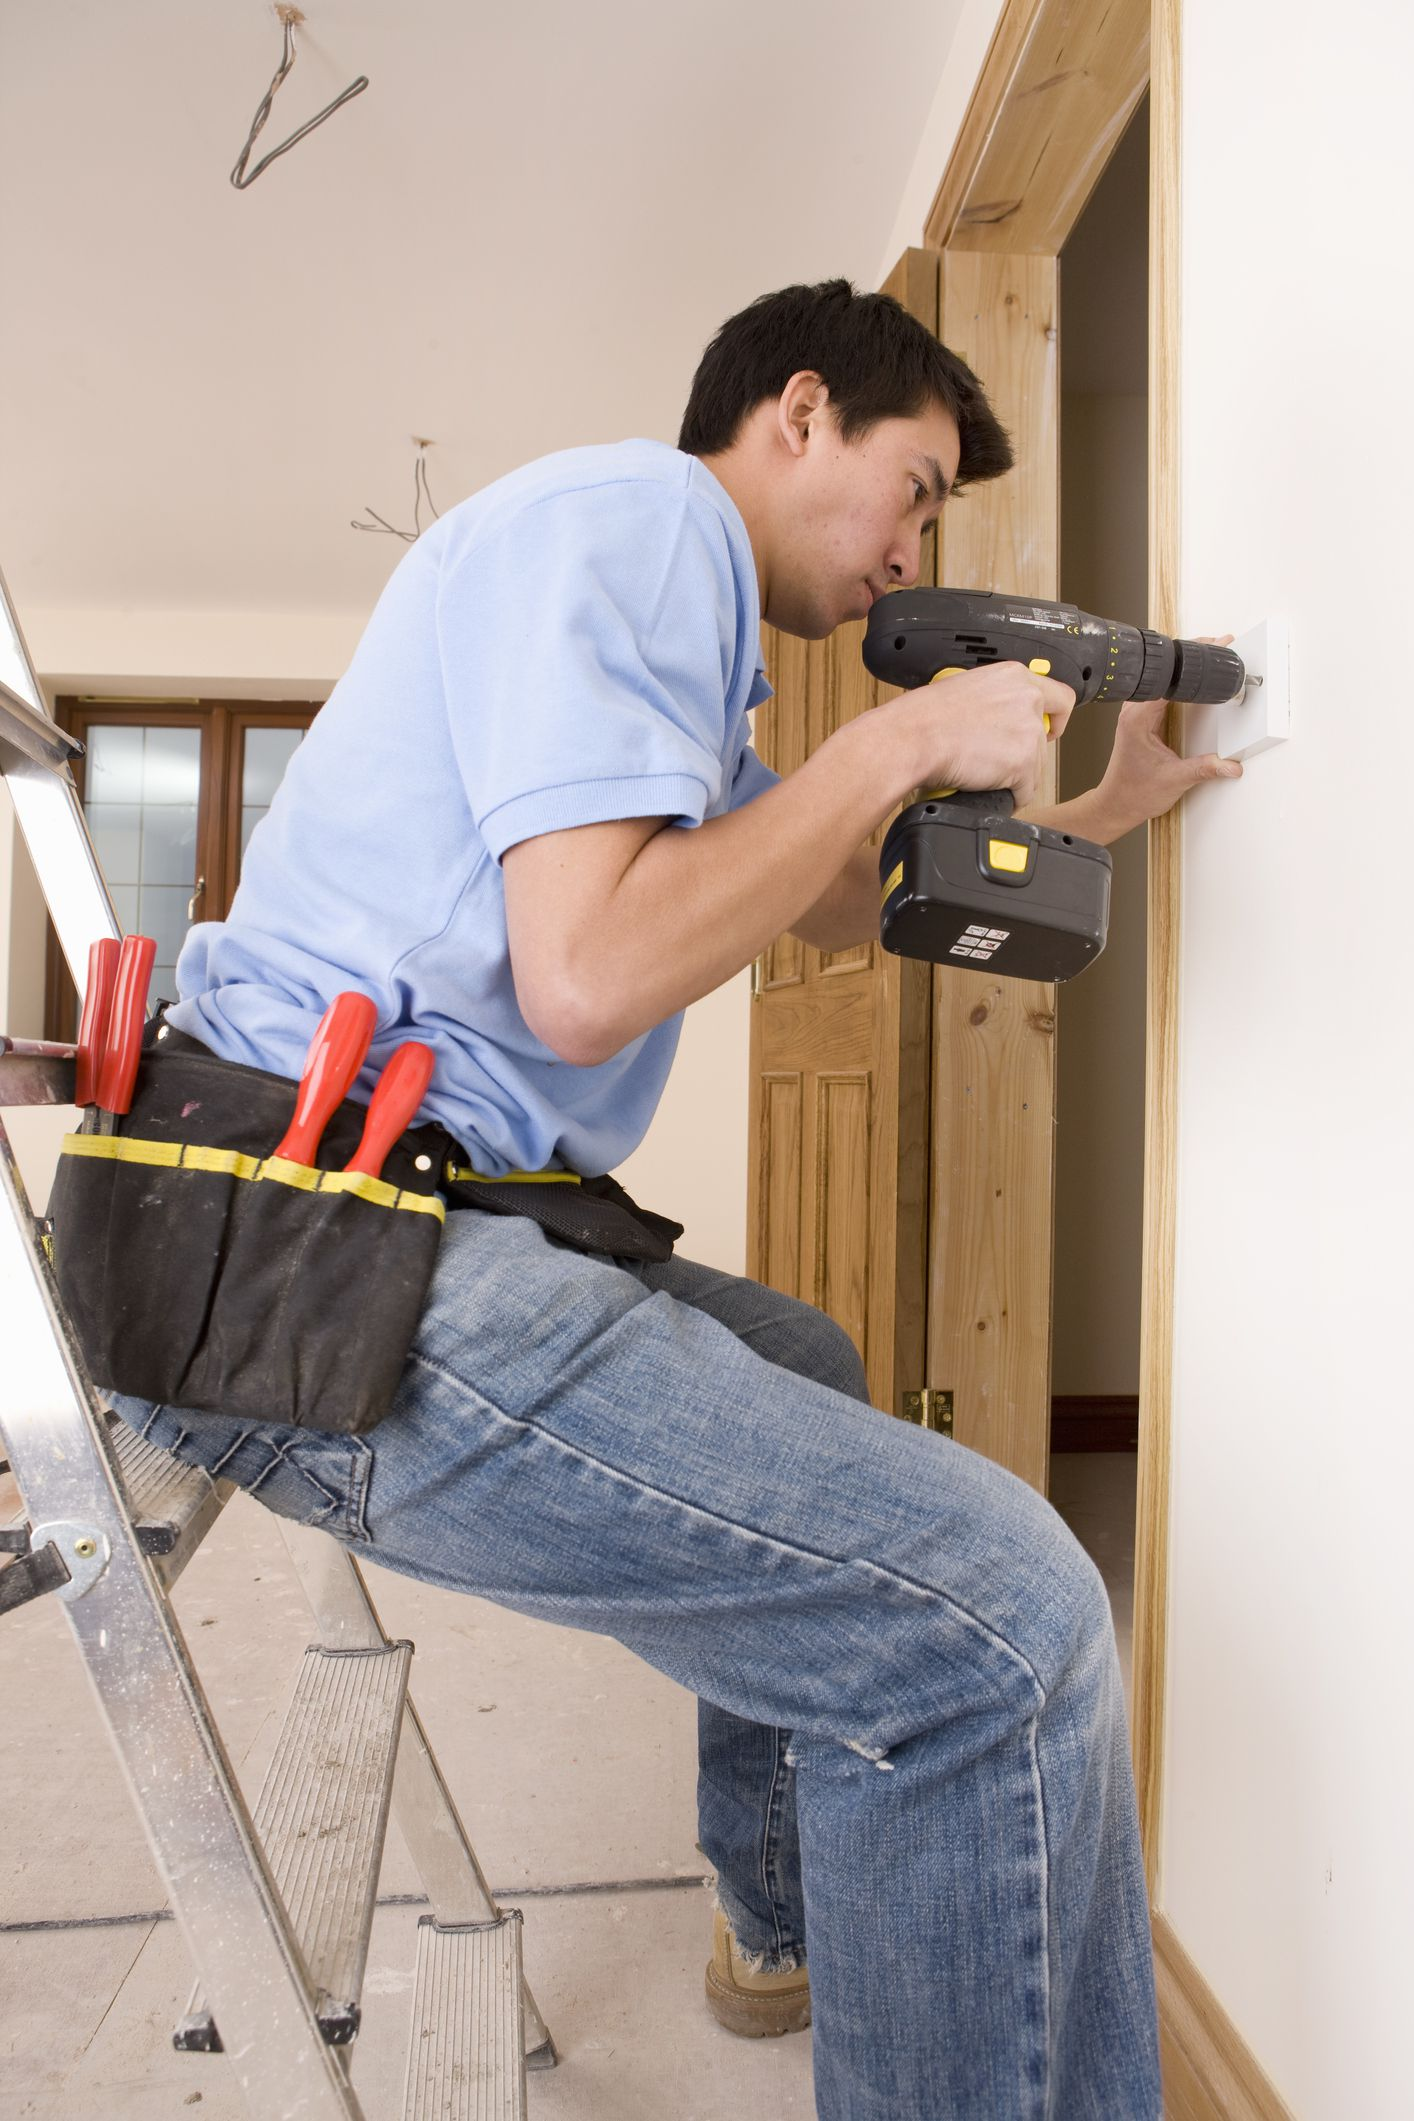 Ladder Safety For Electrical Work